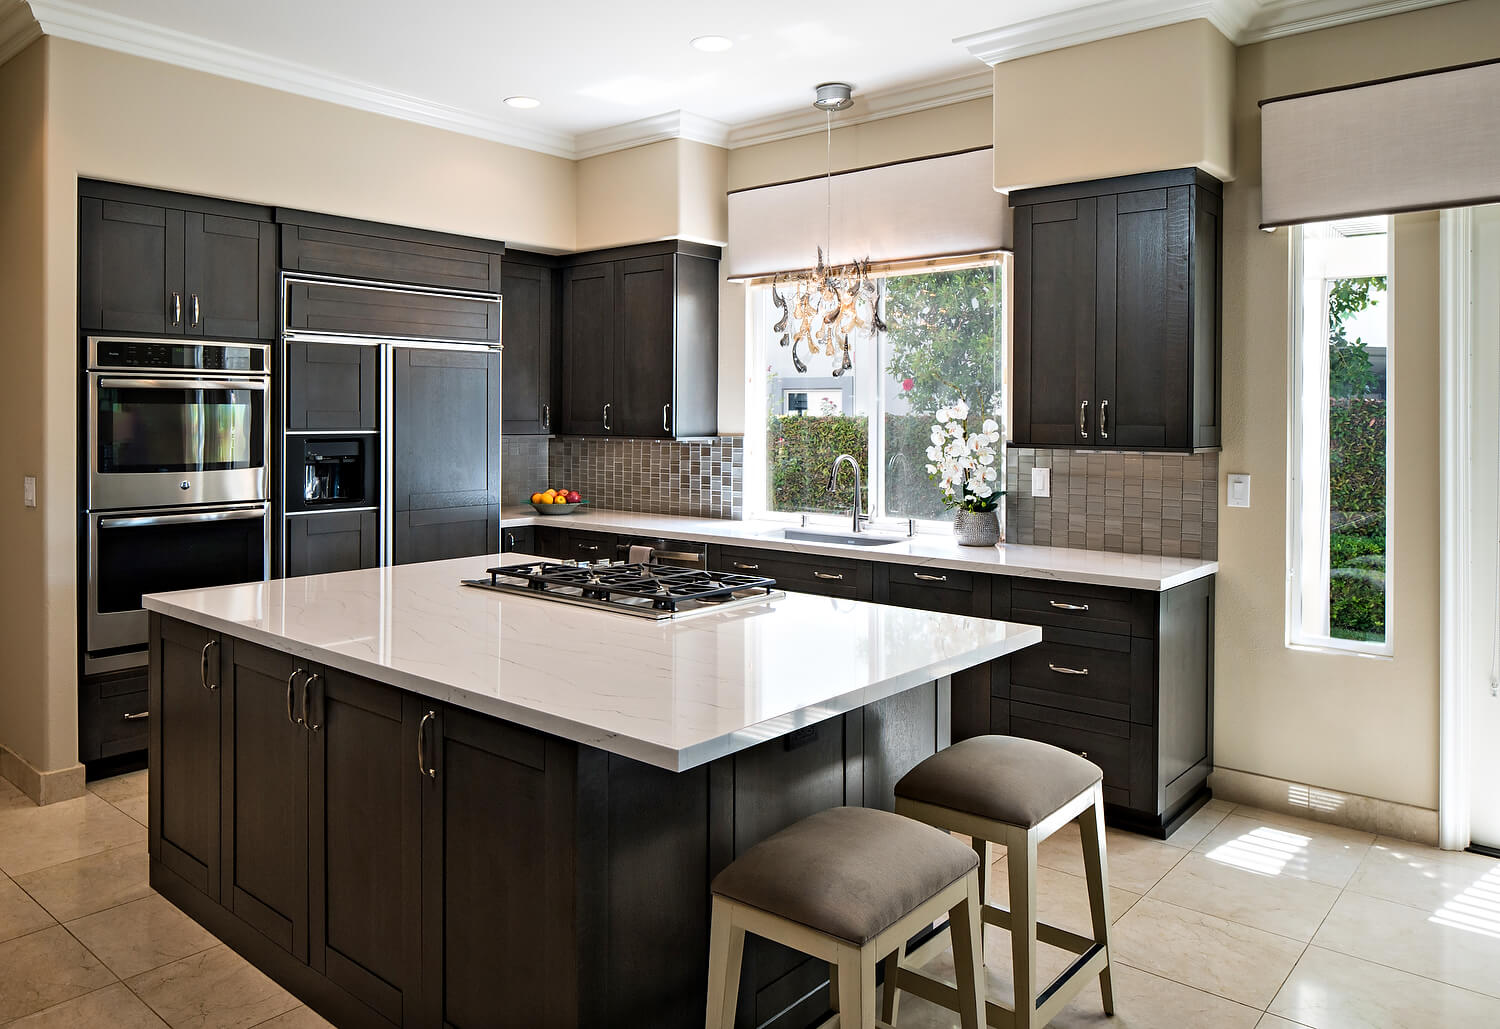 A Different Take on Countertops – Remodeling Design Guide